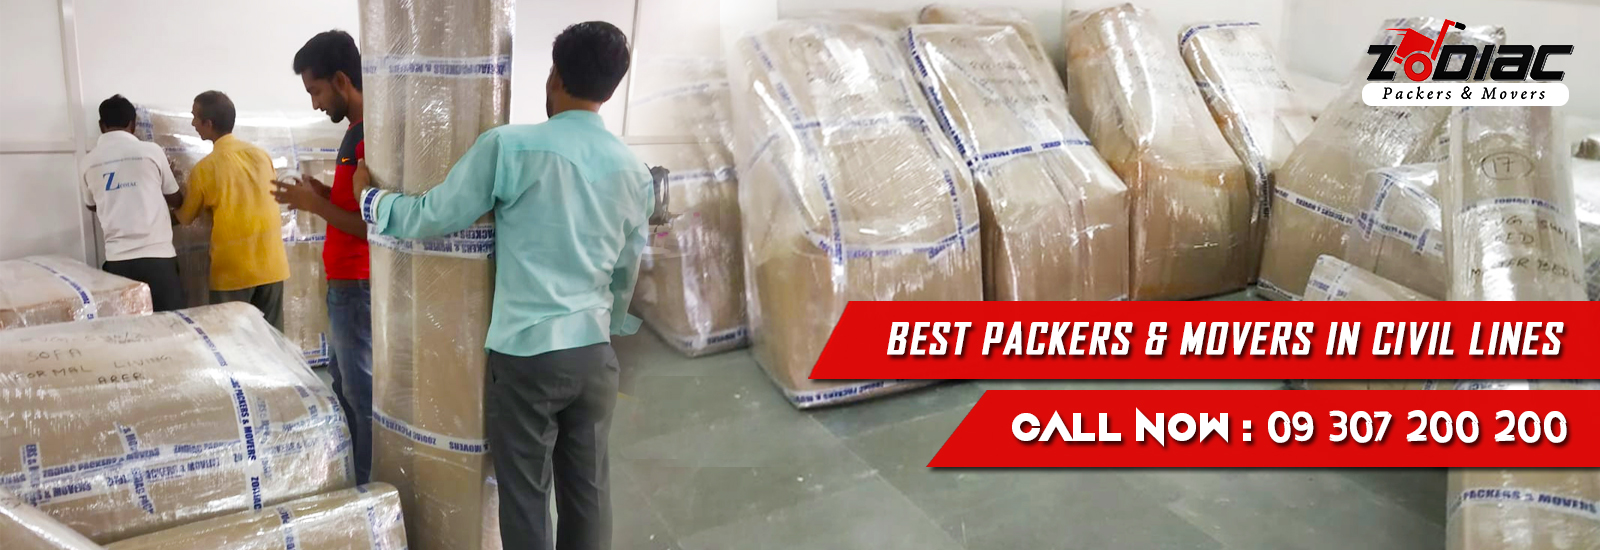 Packers and Movers in Civil Lines